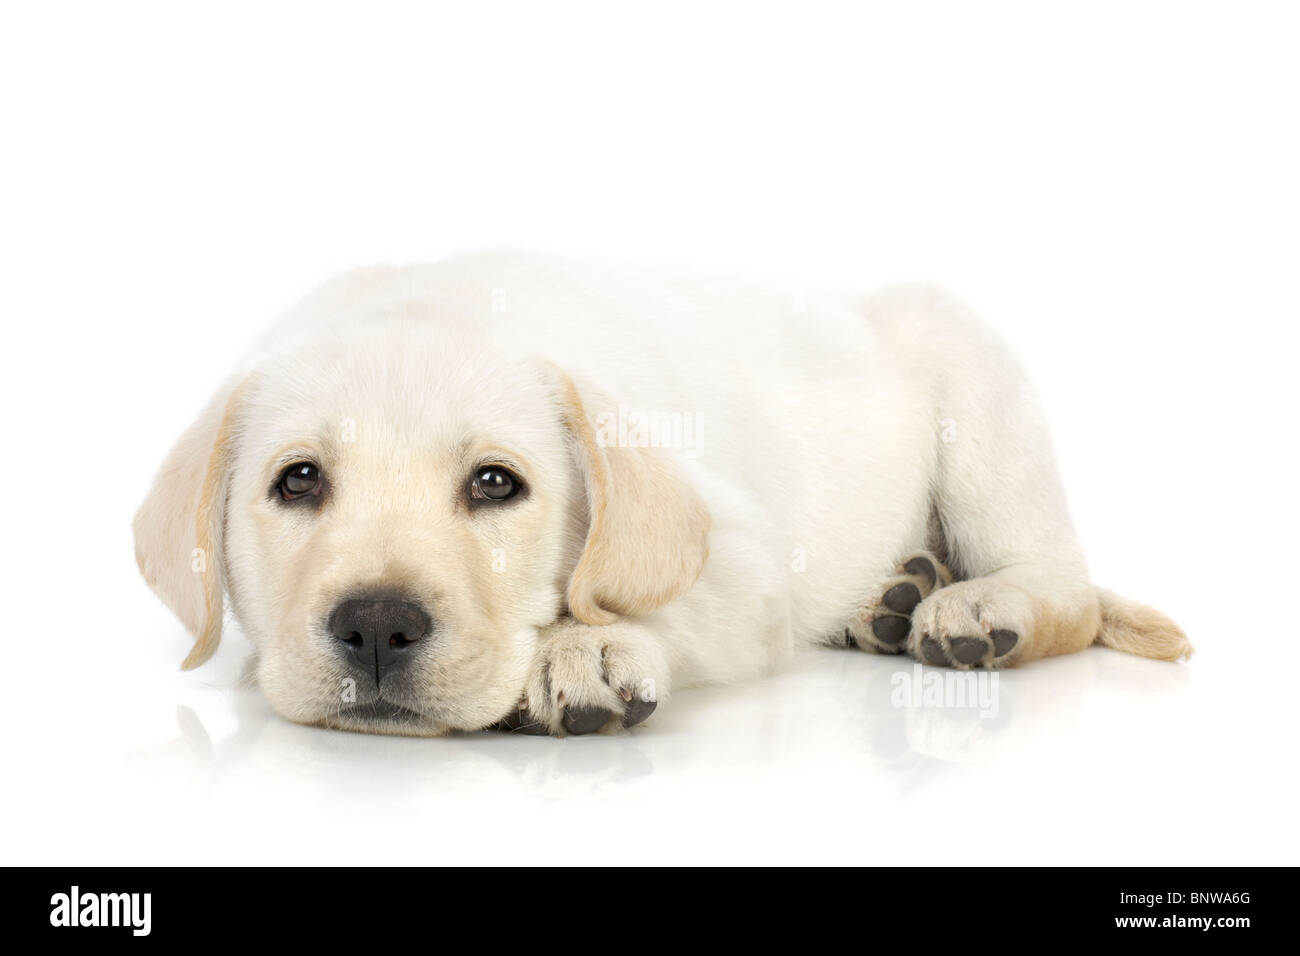 Adorable Labrador retriever chiot contre fond blanc Photo Stock